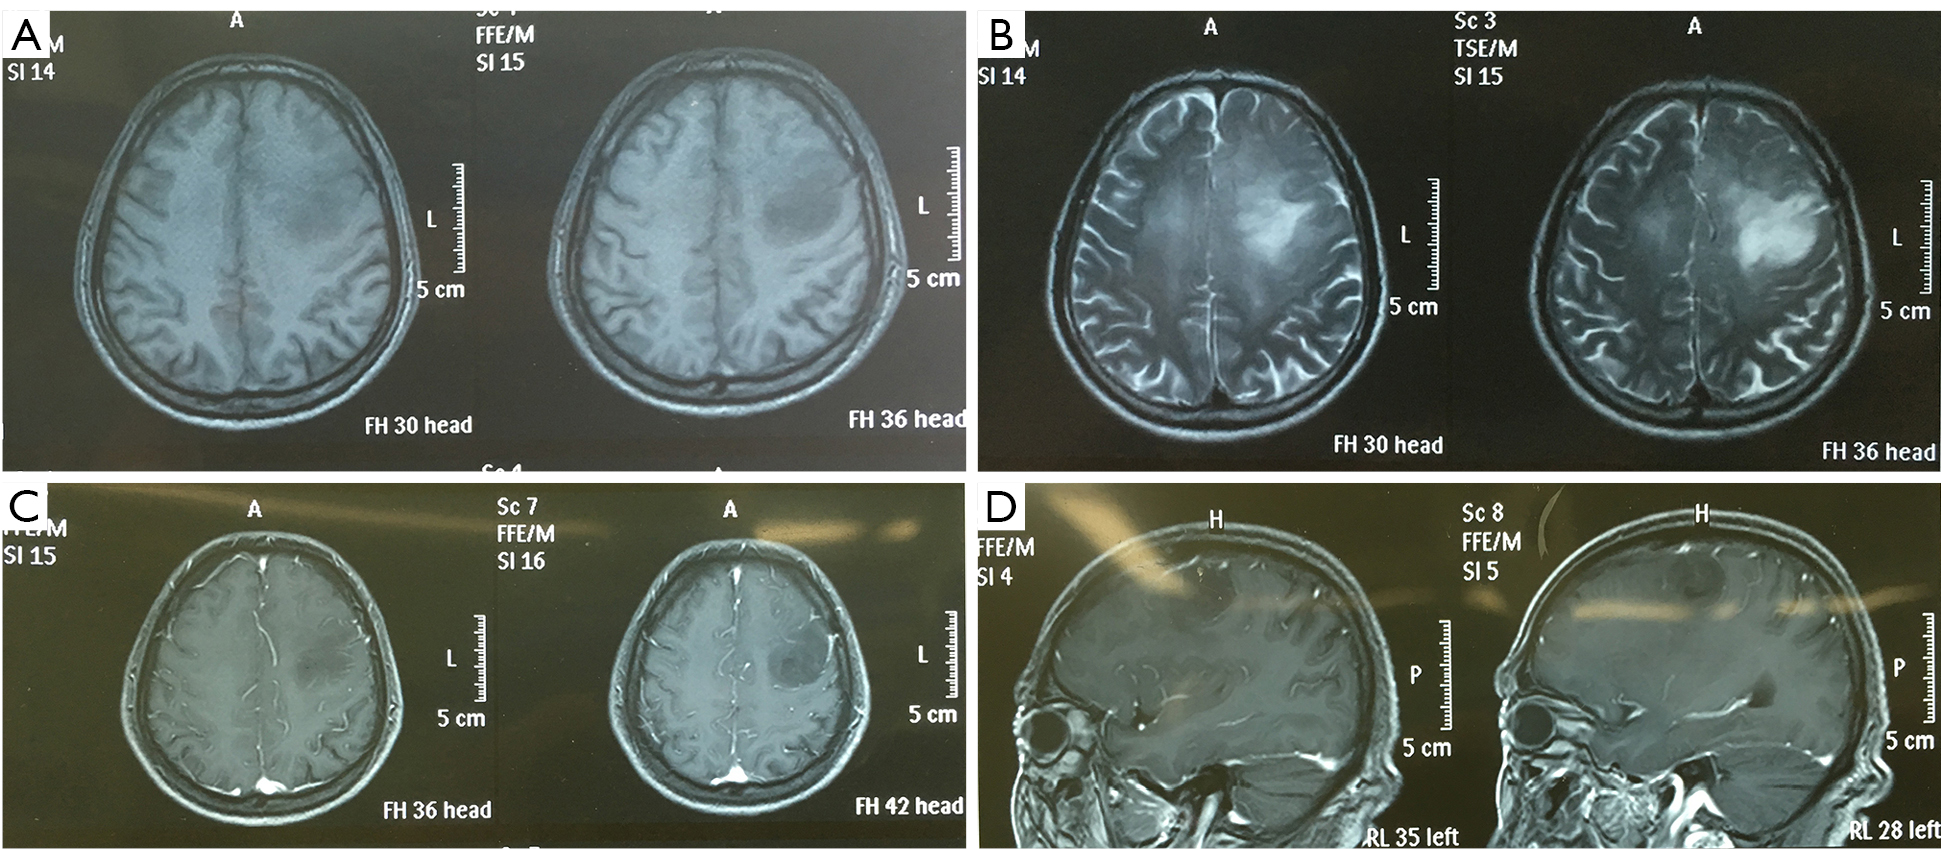 A case of brain glioma progression: surgical resection and post